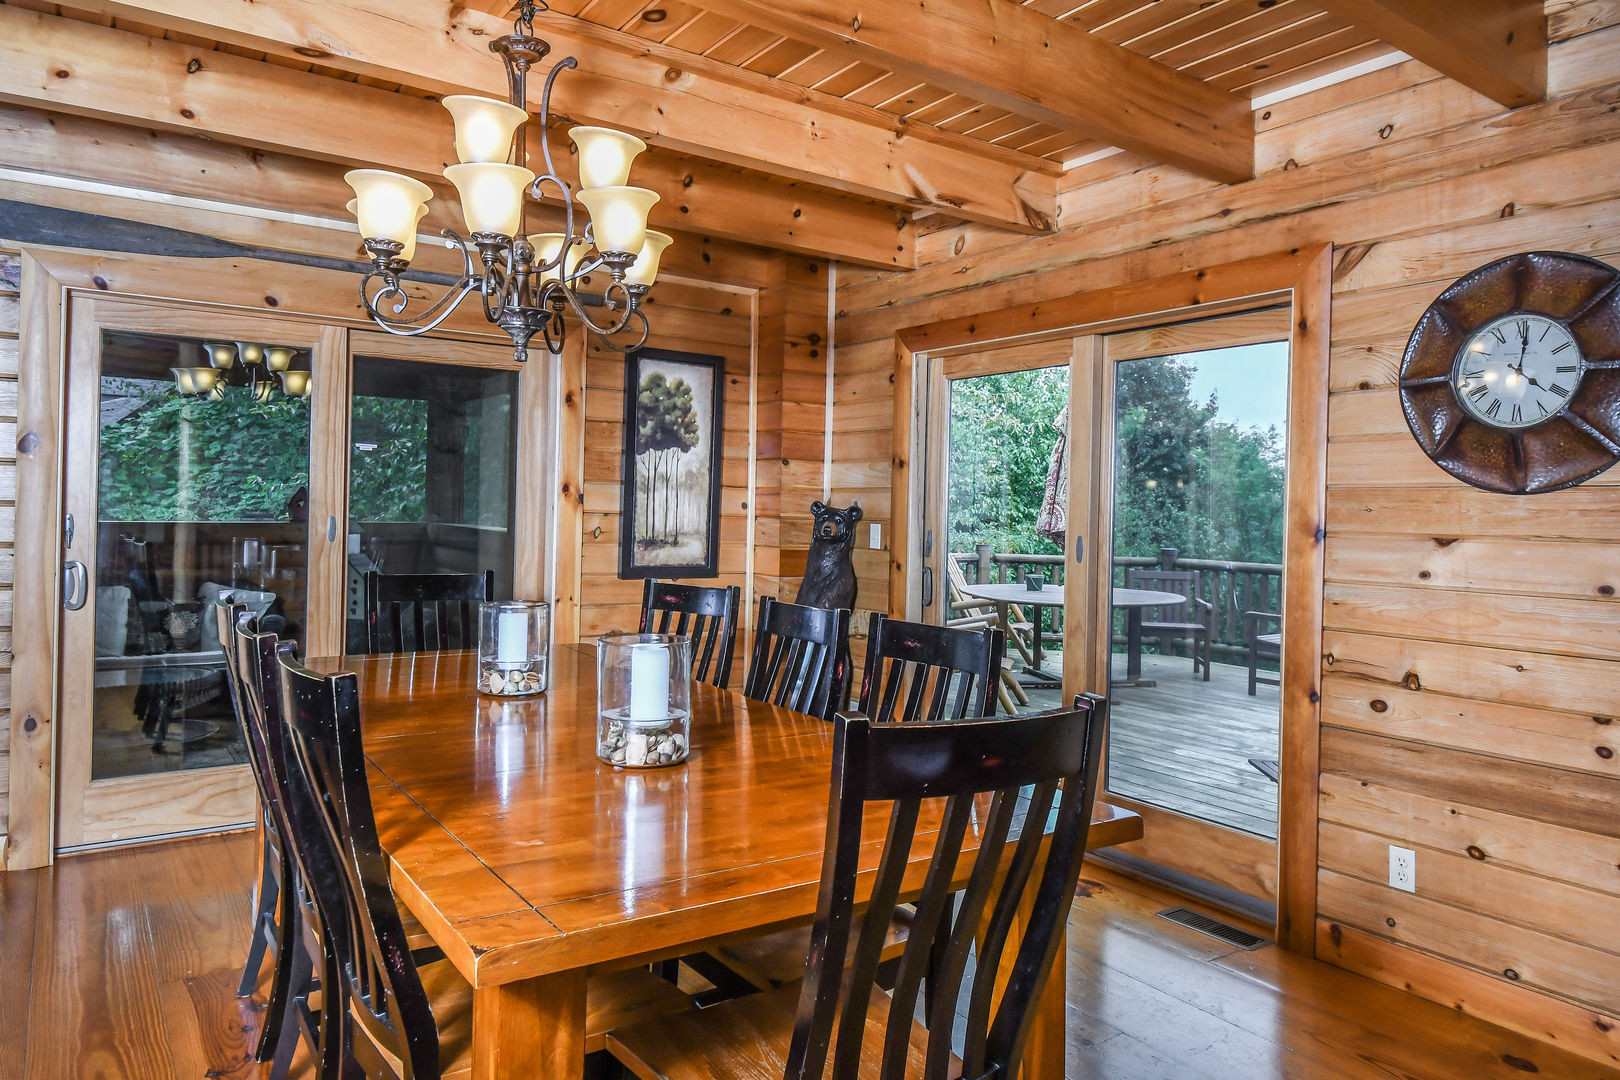 hardwood flooring utah county of highlands heaven taylor made deep creek vacations sales within image 152862579